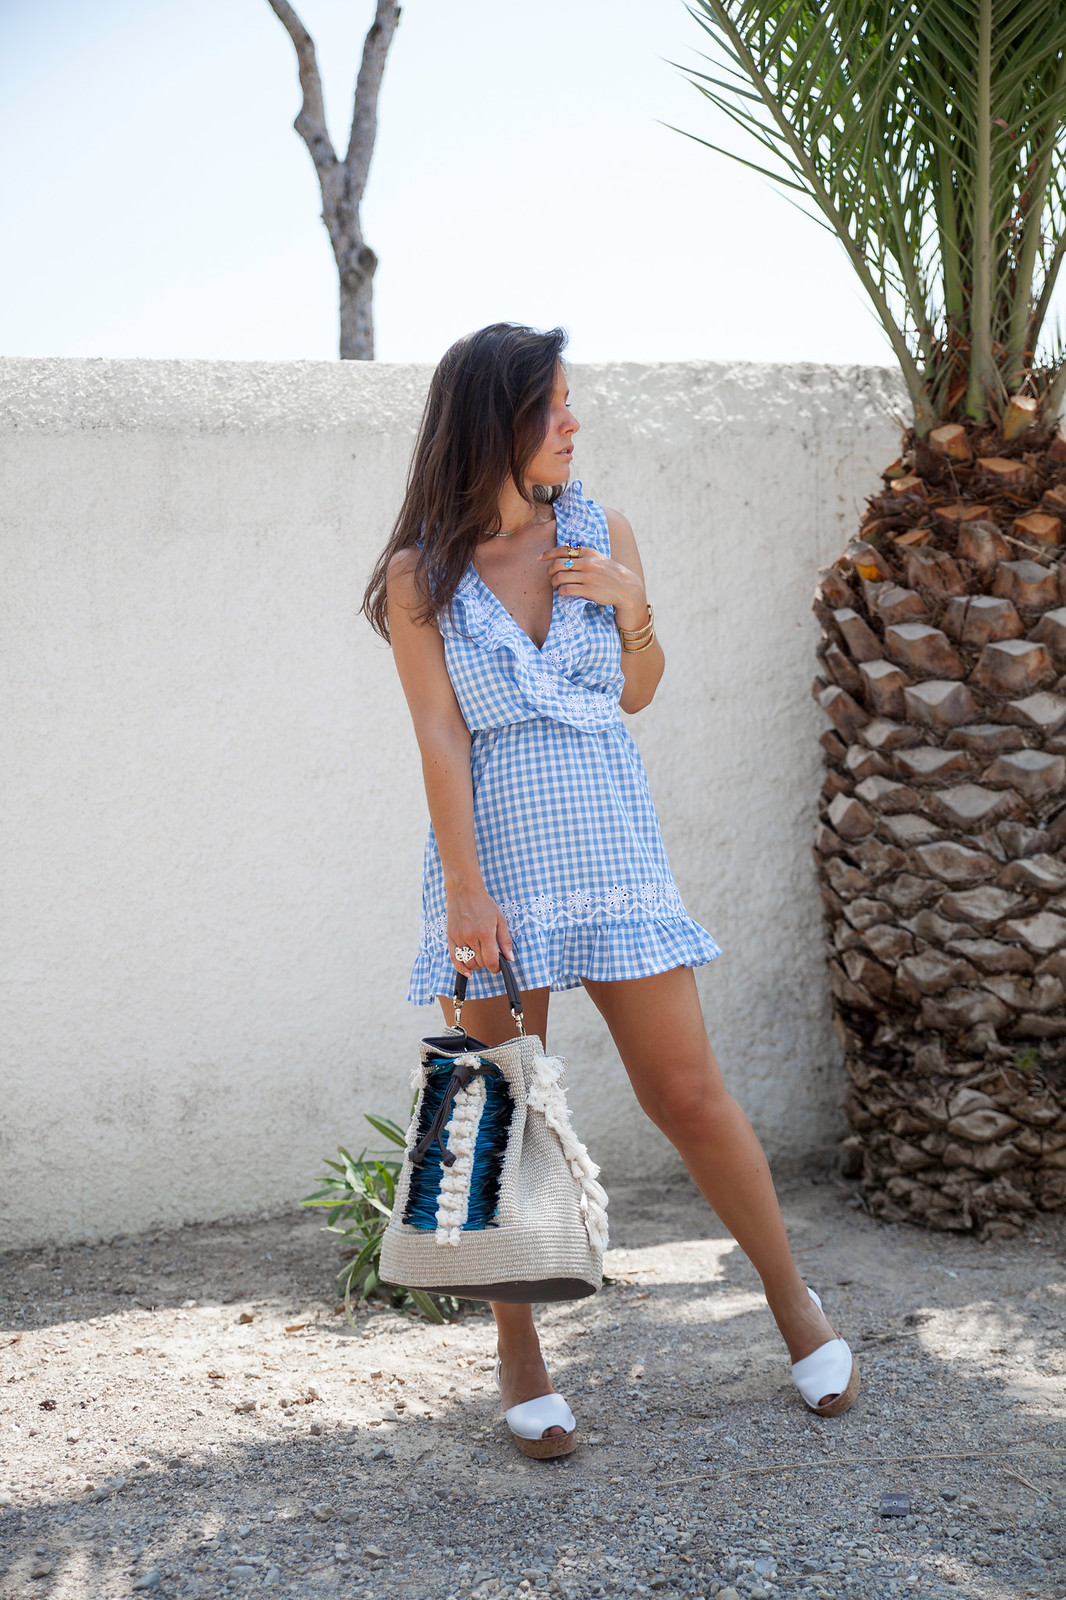 010_Revolve_dress_tularosa_gingham_style_outfit_theguestgirl_influencer_barcelona_spain_style_summer